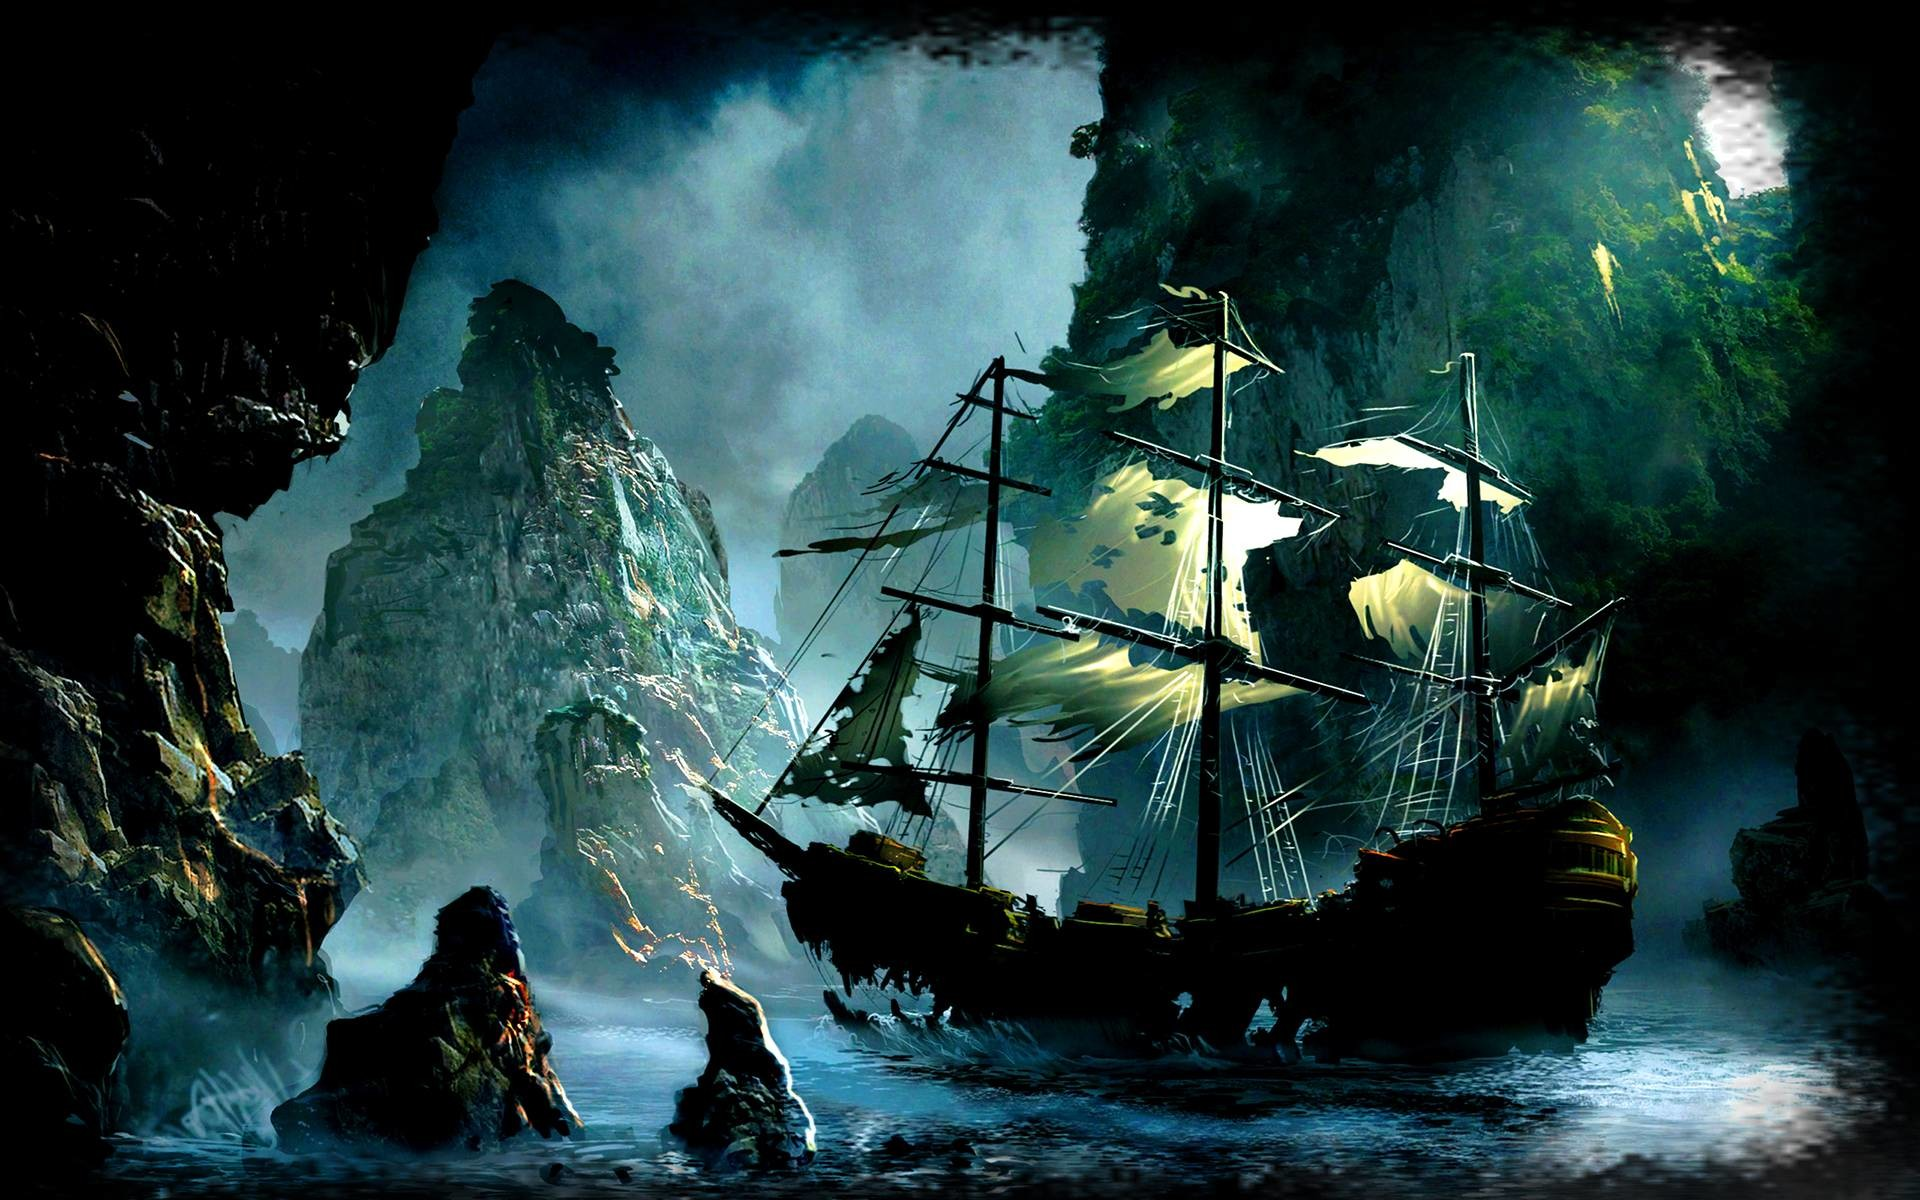 1920x1200 Wallpapers For > Pirate Ghost Ship Wallpaper